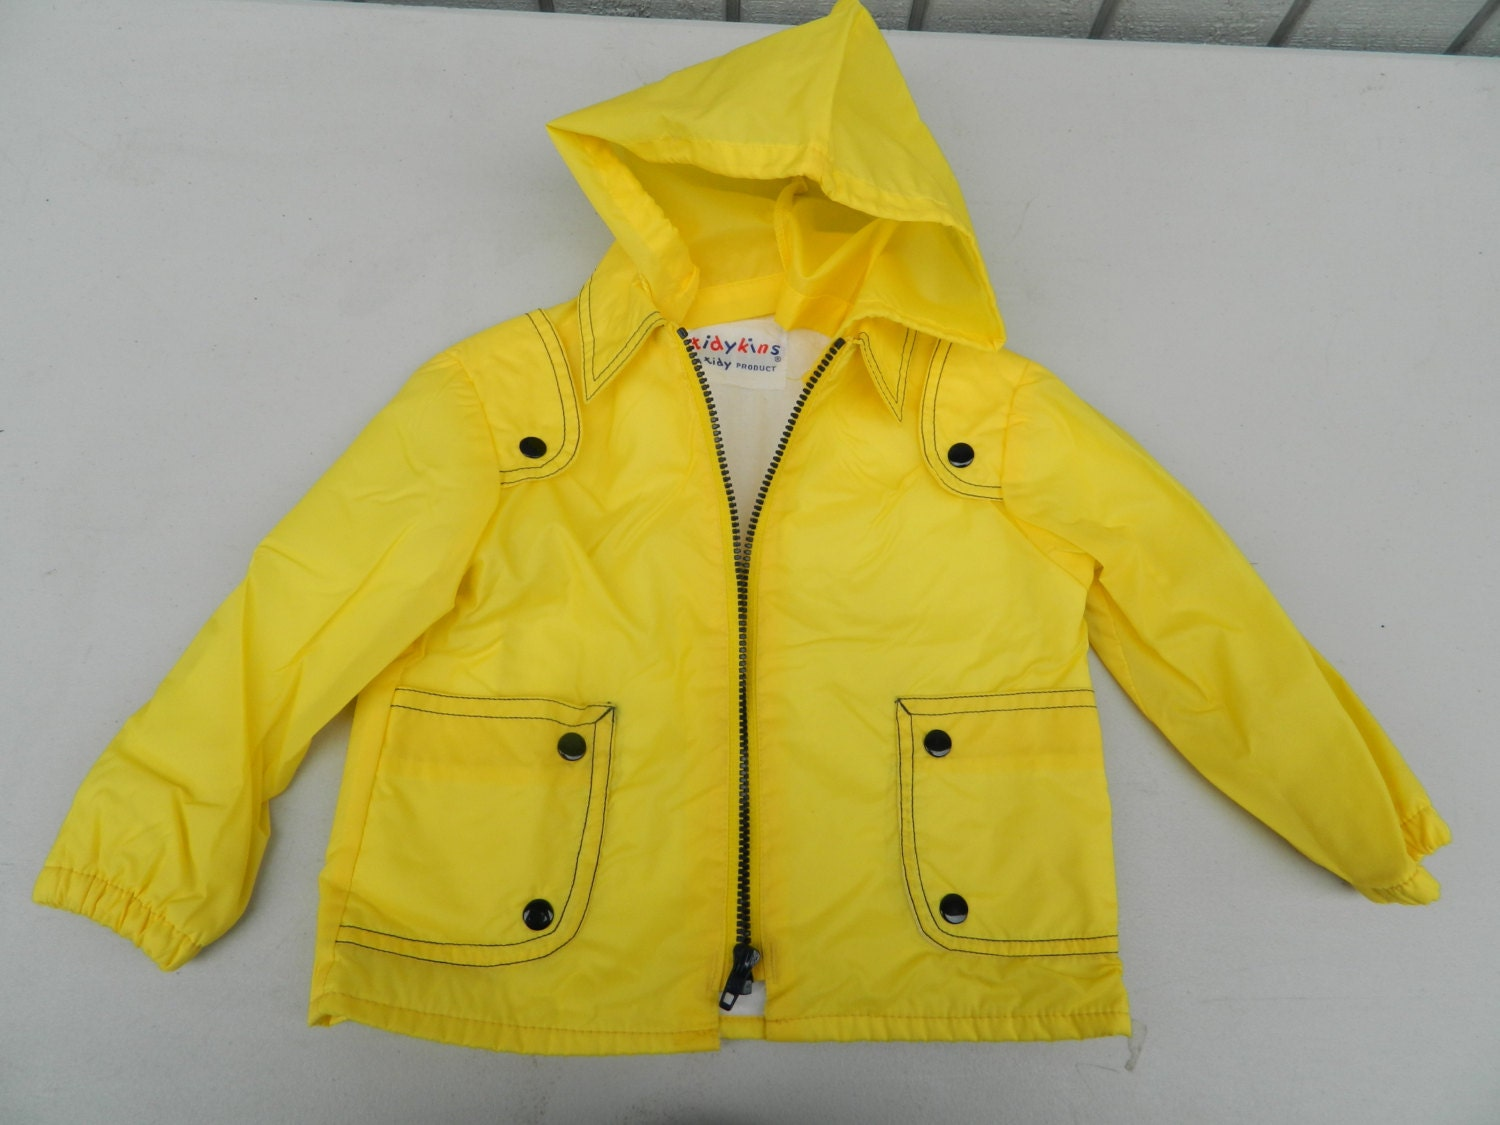 Vintage Yellow Raincoat for Toddler / Bright Yellow Front Zip